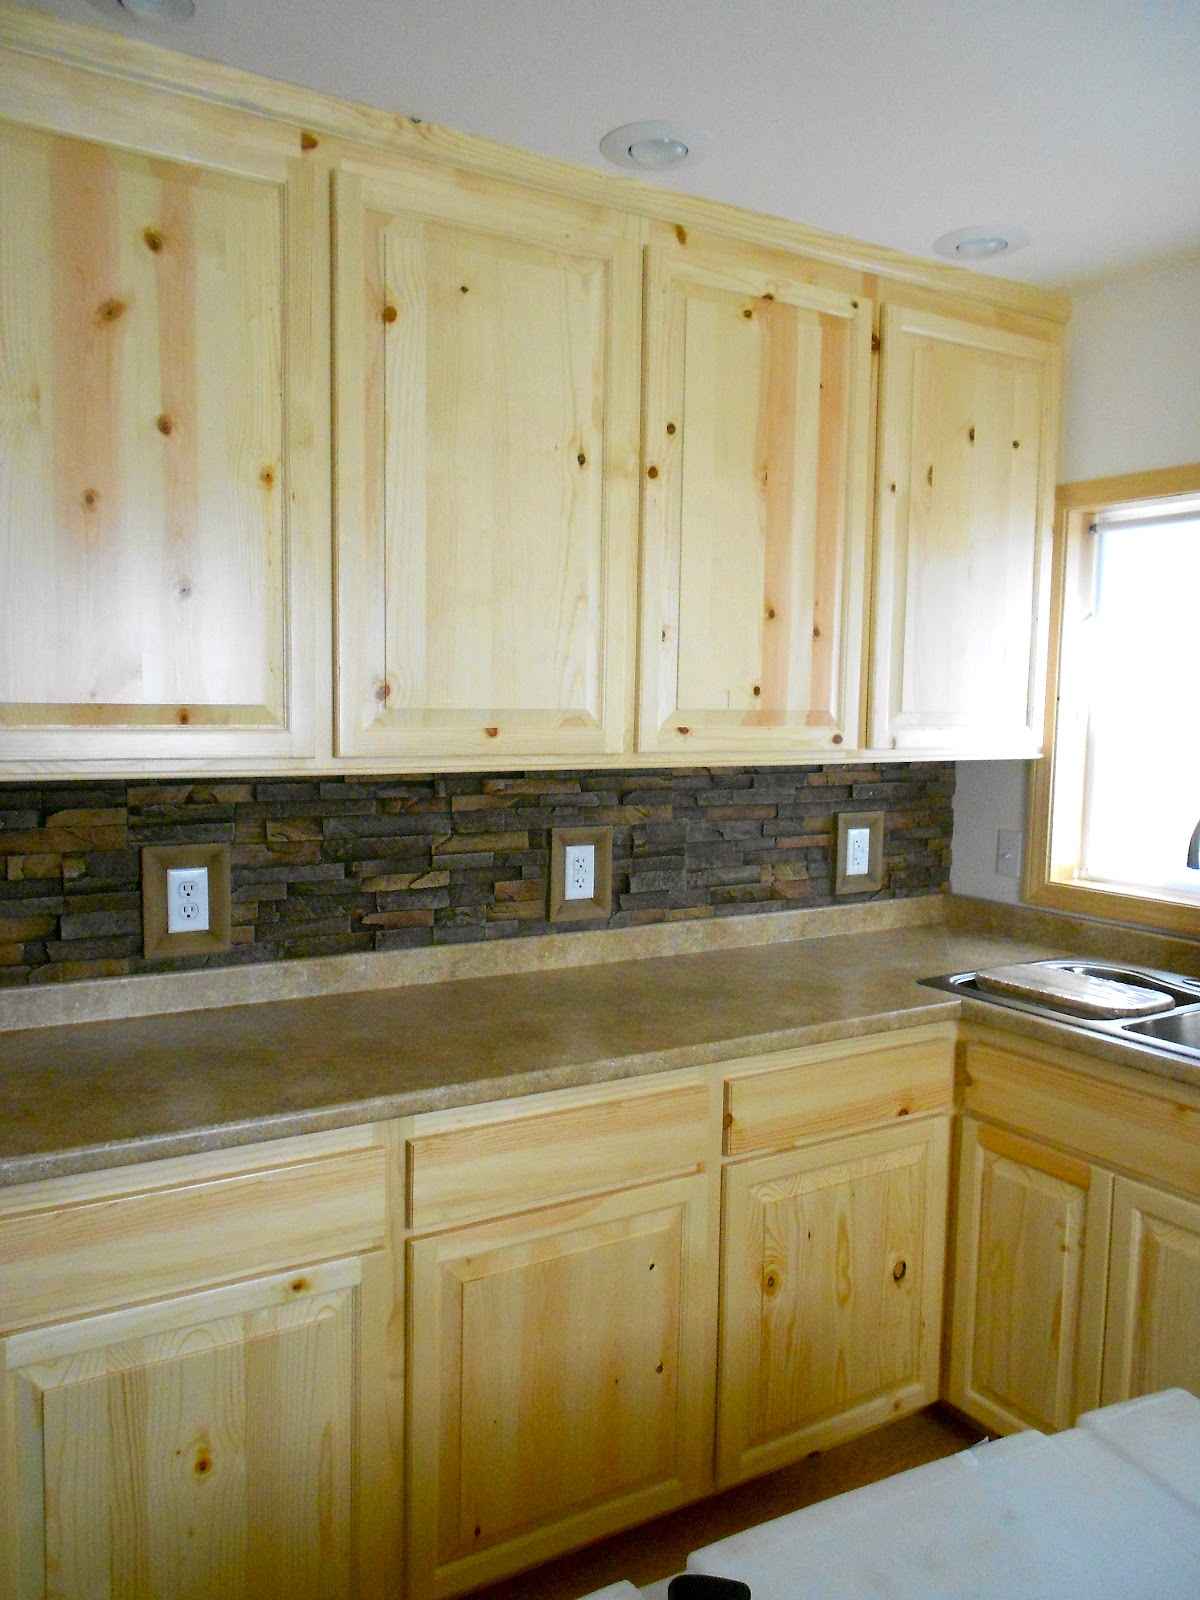 Birch Cabinets For Small Kitchen Architectural Wood Designs: Knotty Pine Cabinets